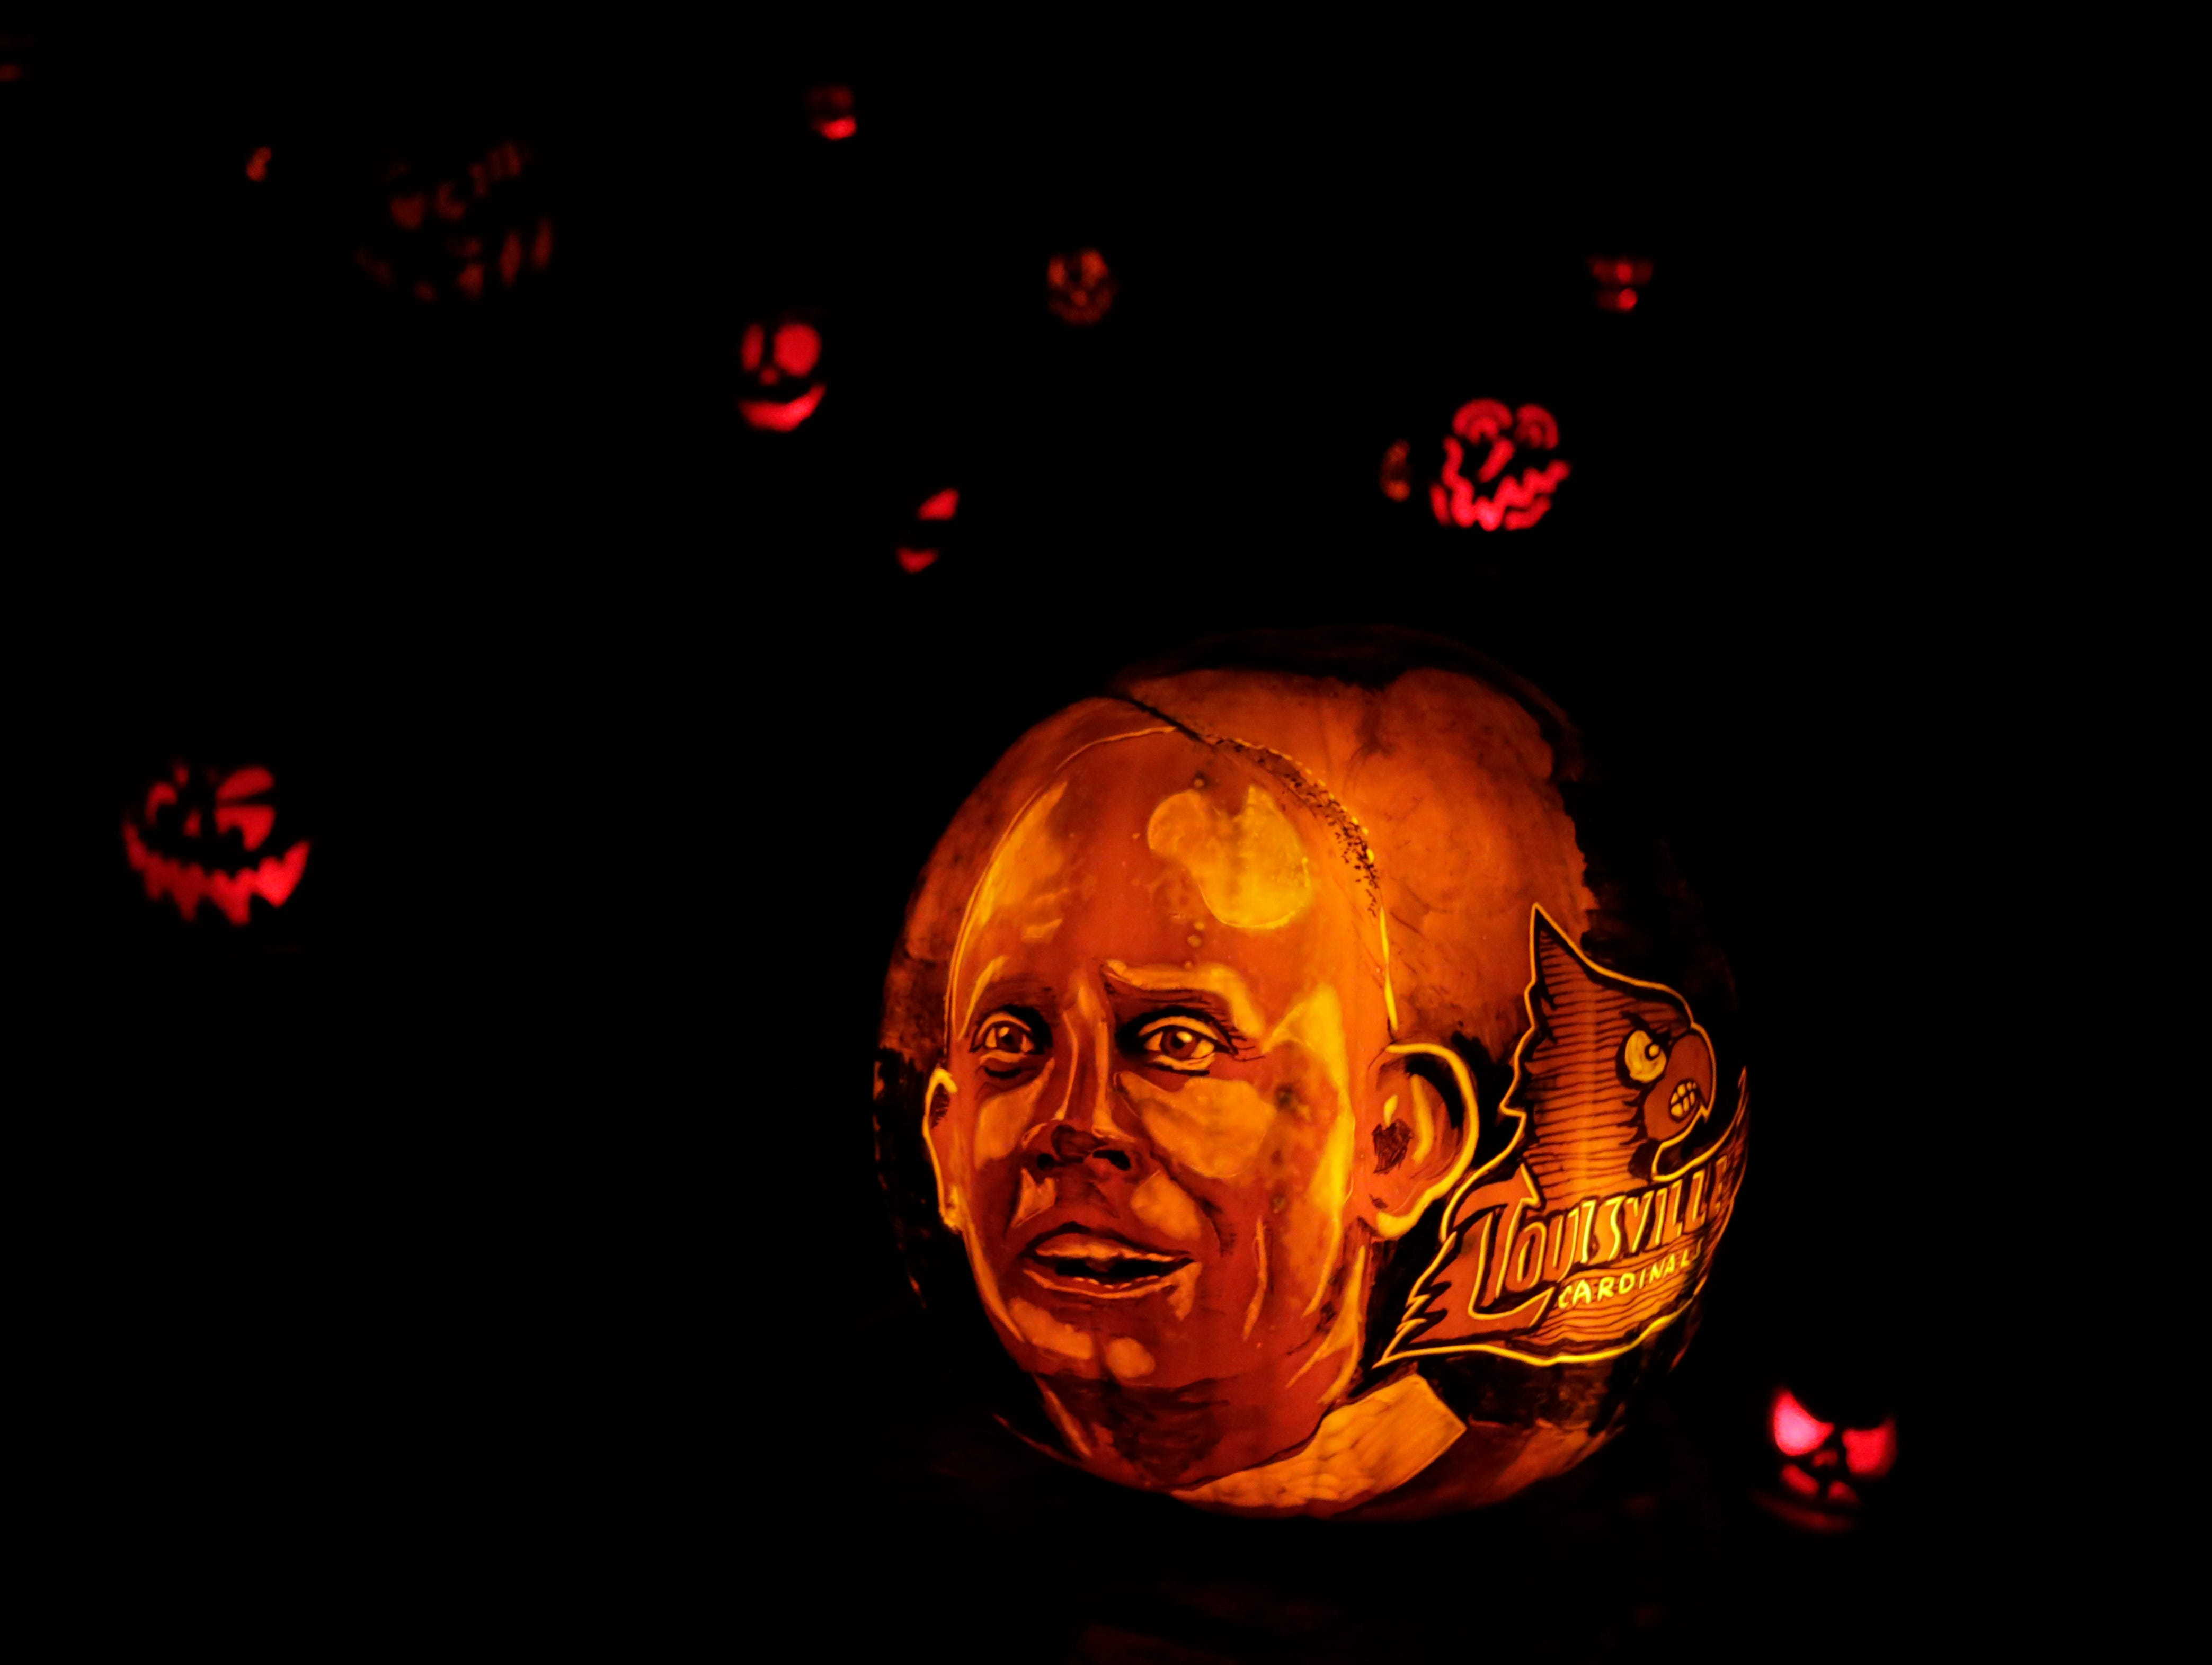 Louisville's new basketball coach Chris Mack appears on a pumpkin at this year's Jack O' Lantern Spectacular. Oct. 9, 2018